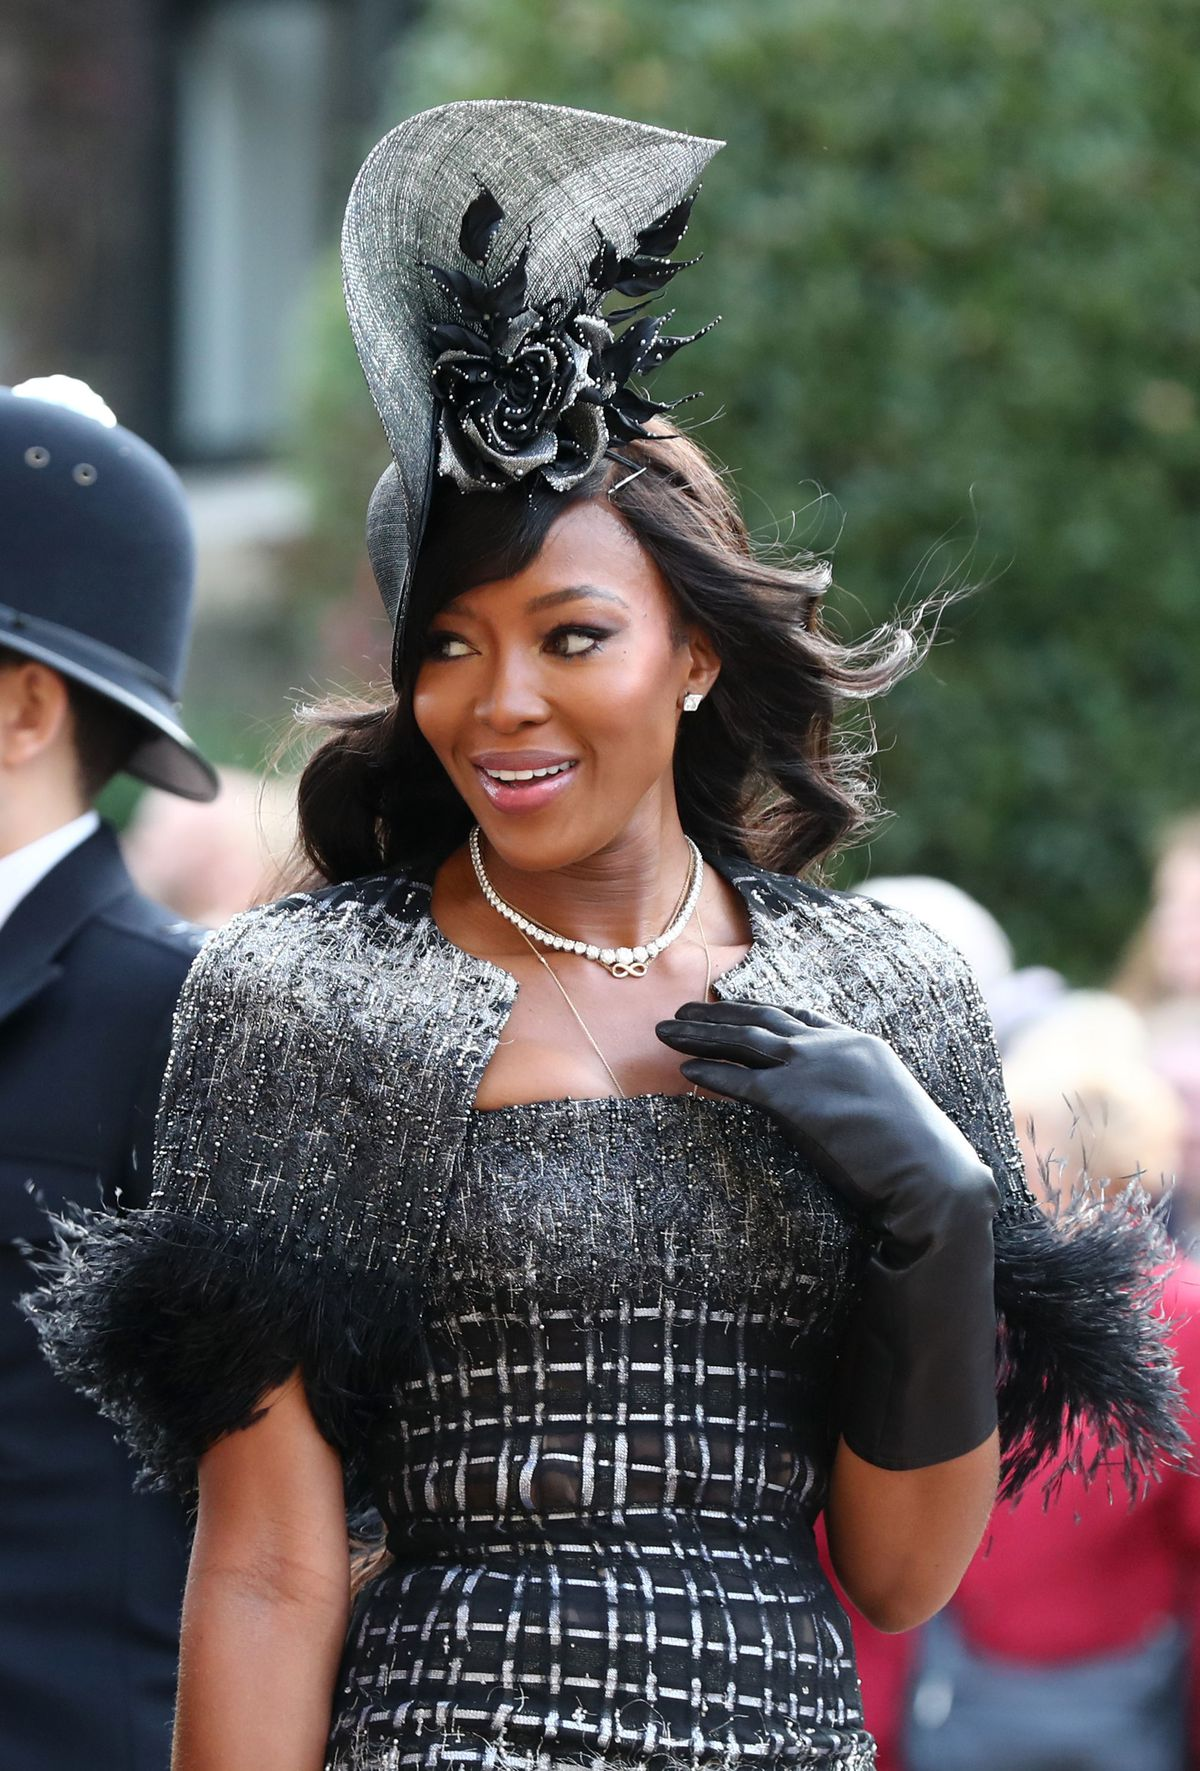 Naomi Campbell smiles to someone at her side.